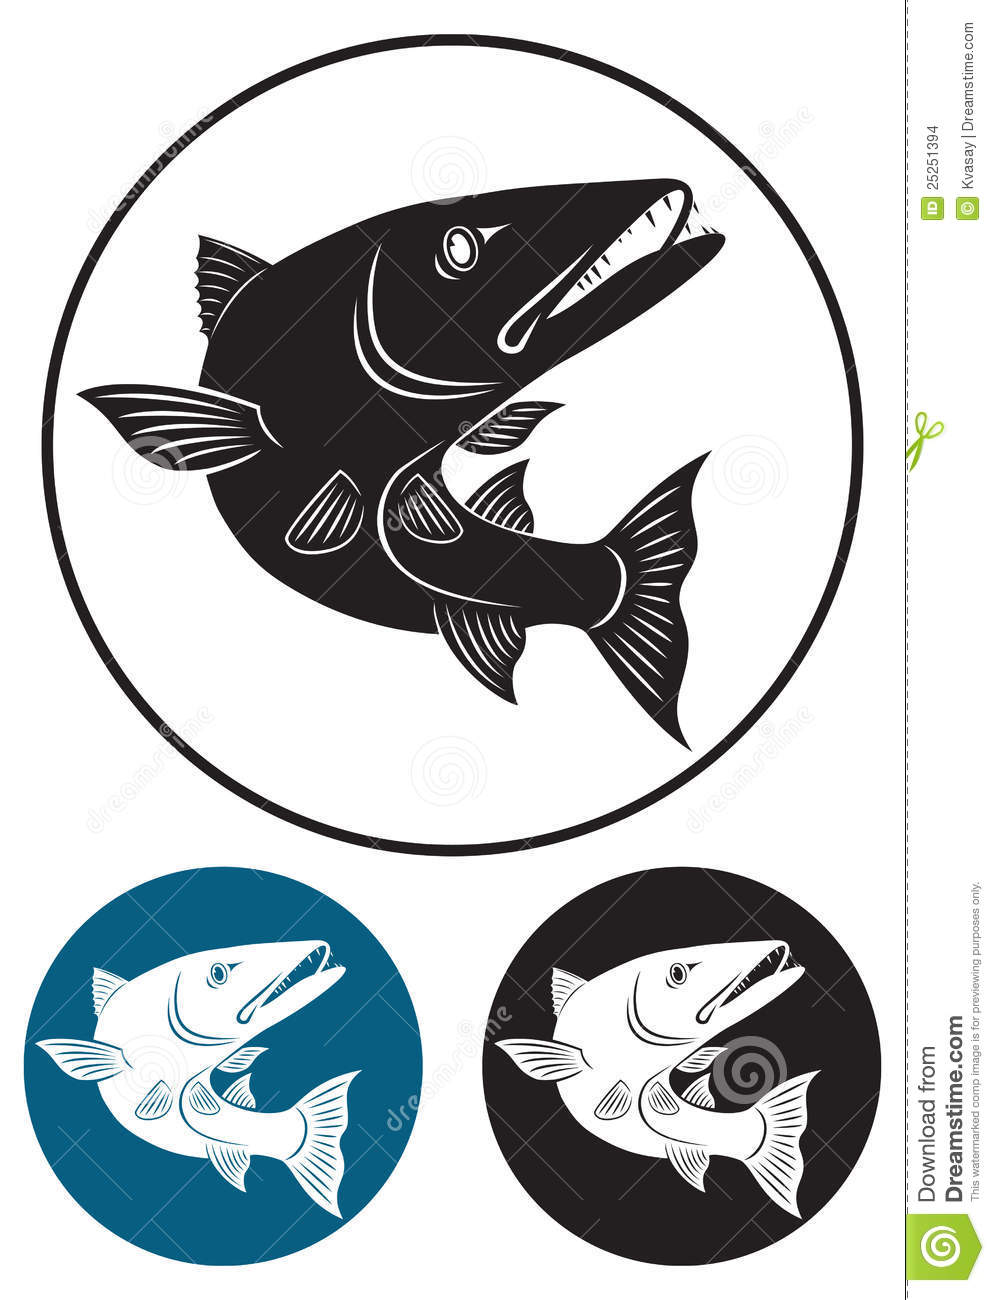 barracuda clipart panda free clipart images rh clipartpanda com barracuda car clipart barracuda clipart black and white